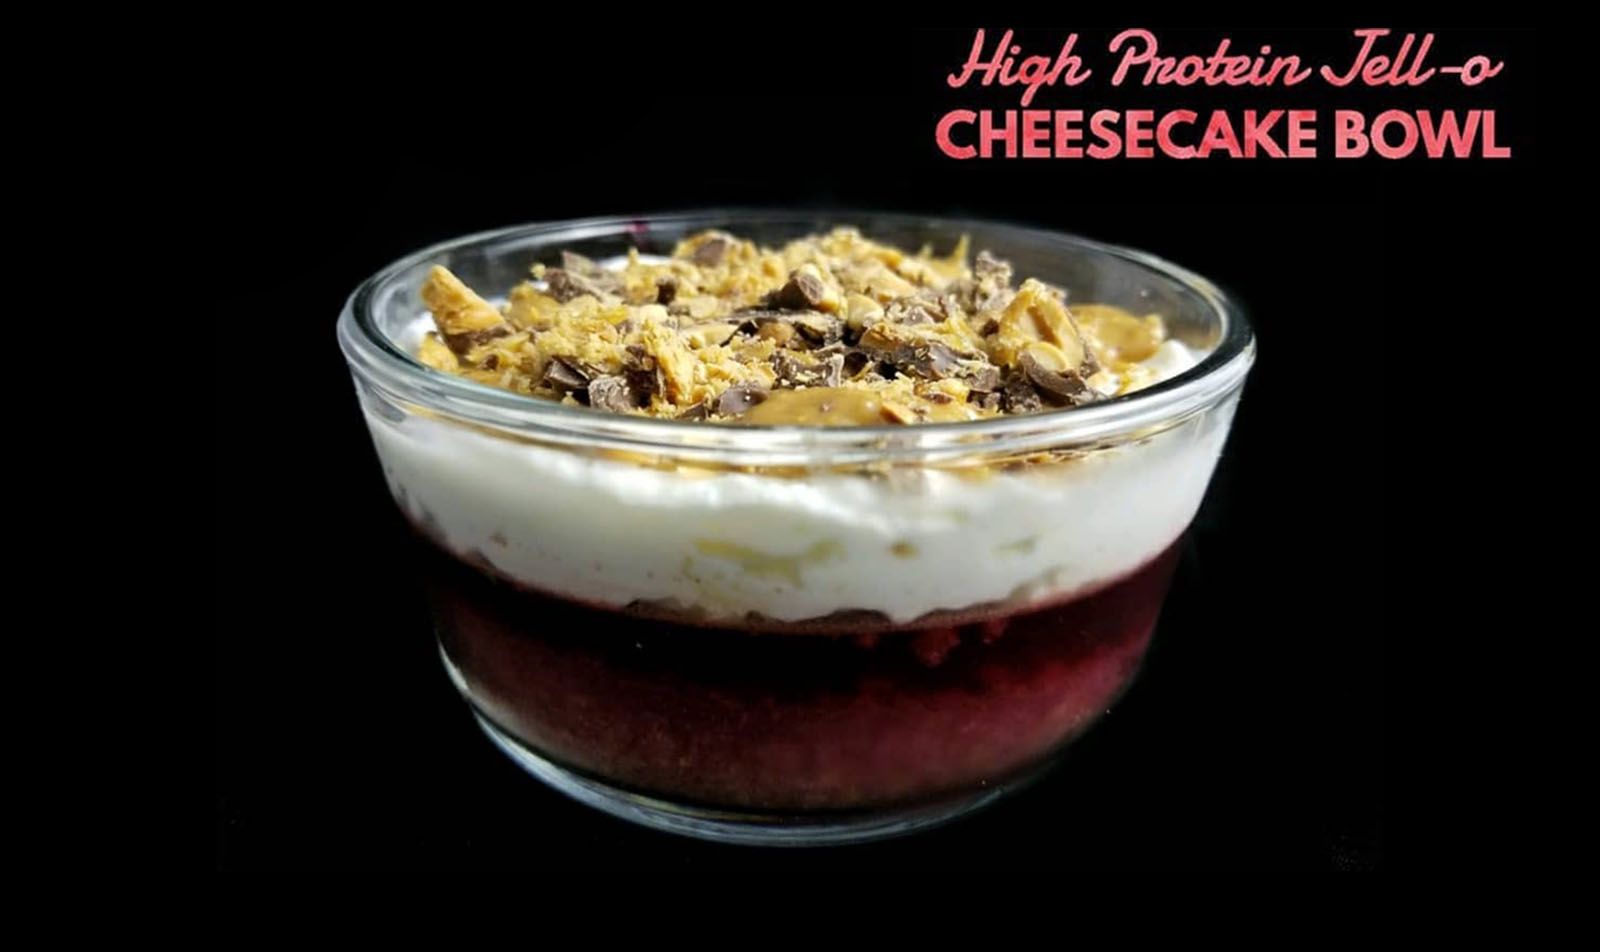 High Protein Jell-O Cheesecake Bowl